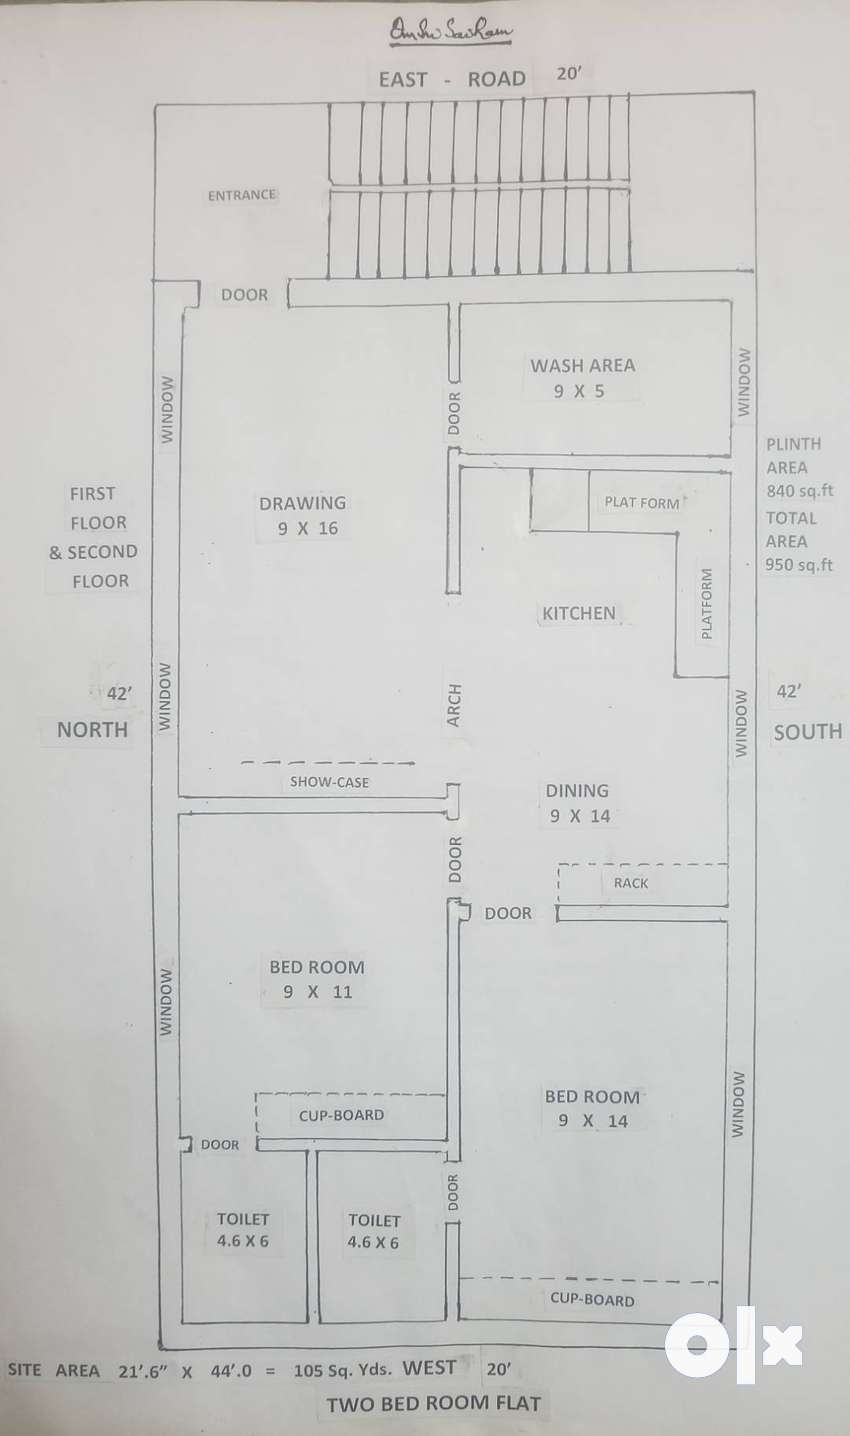 Independent House in 105.11 sq. yds and 840 sq. ft Floor Area 0